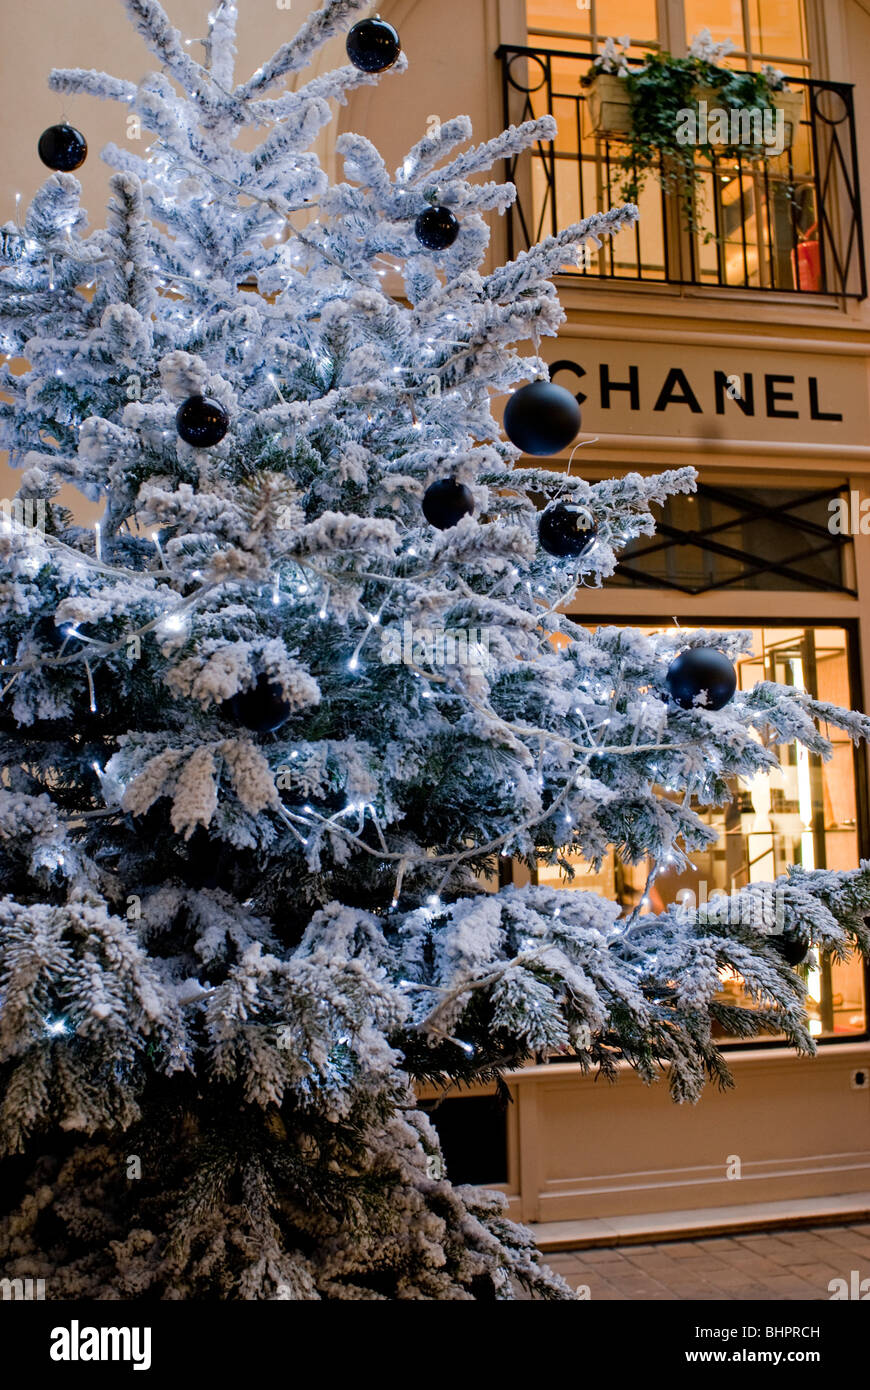 paris france christmas lights black tree ornament christmas trees on display at le village royal chanel store - Christmas Lights Store